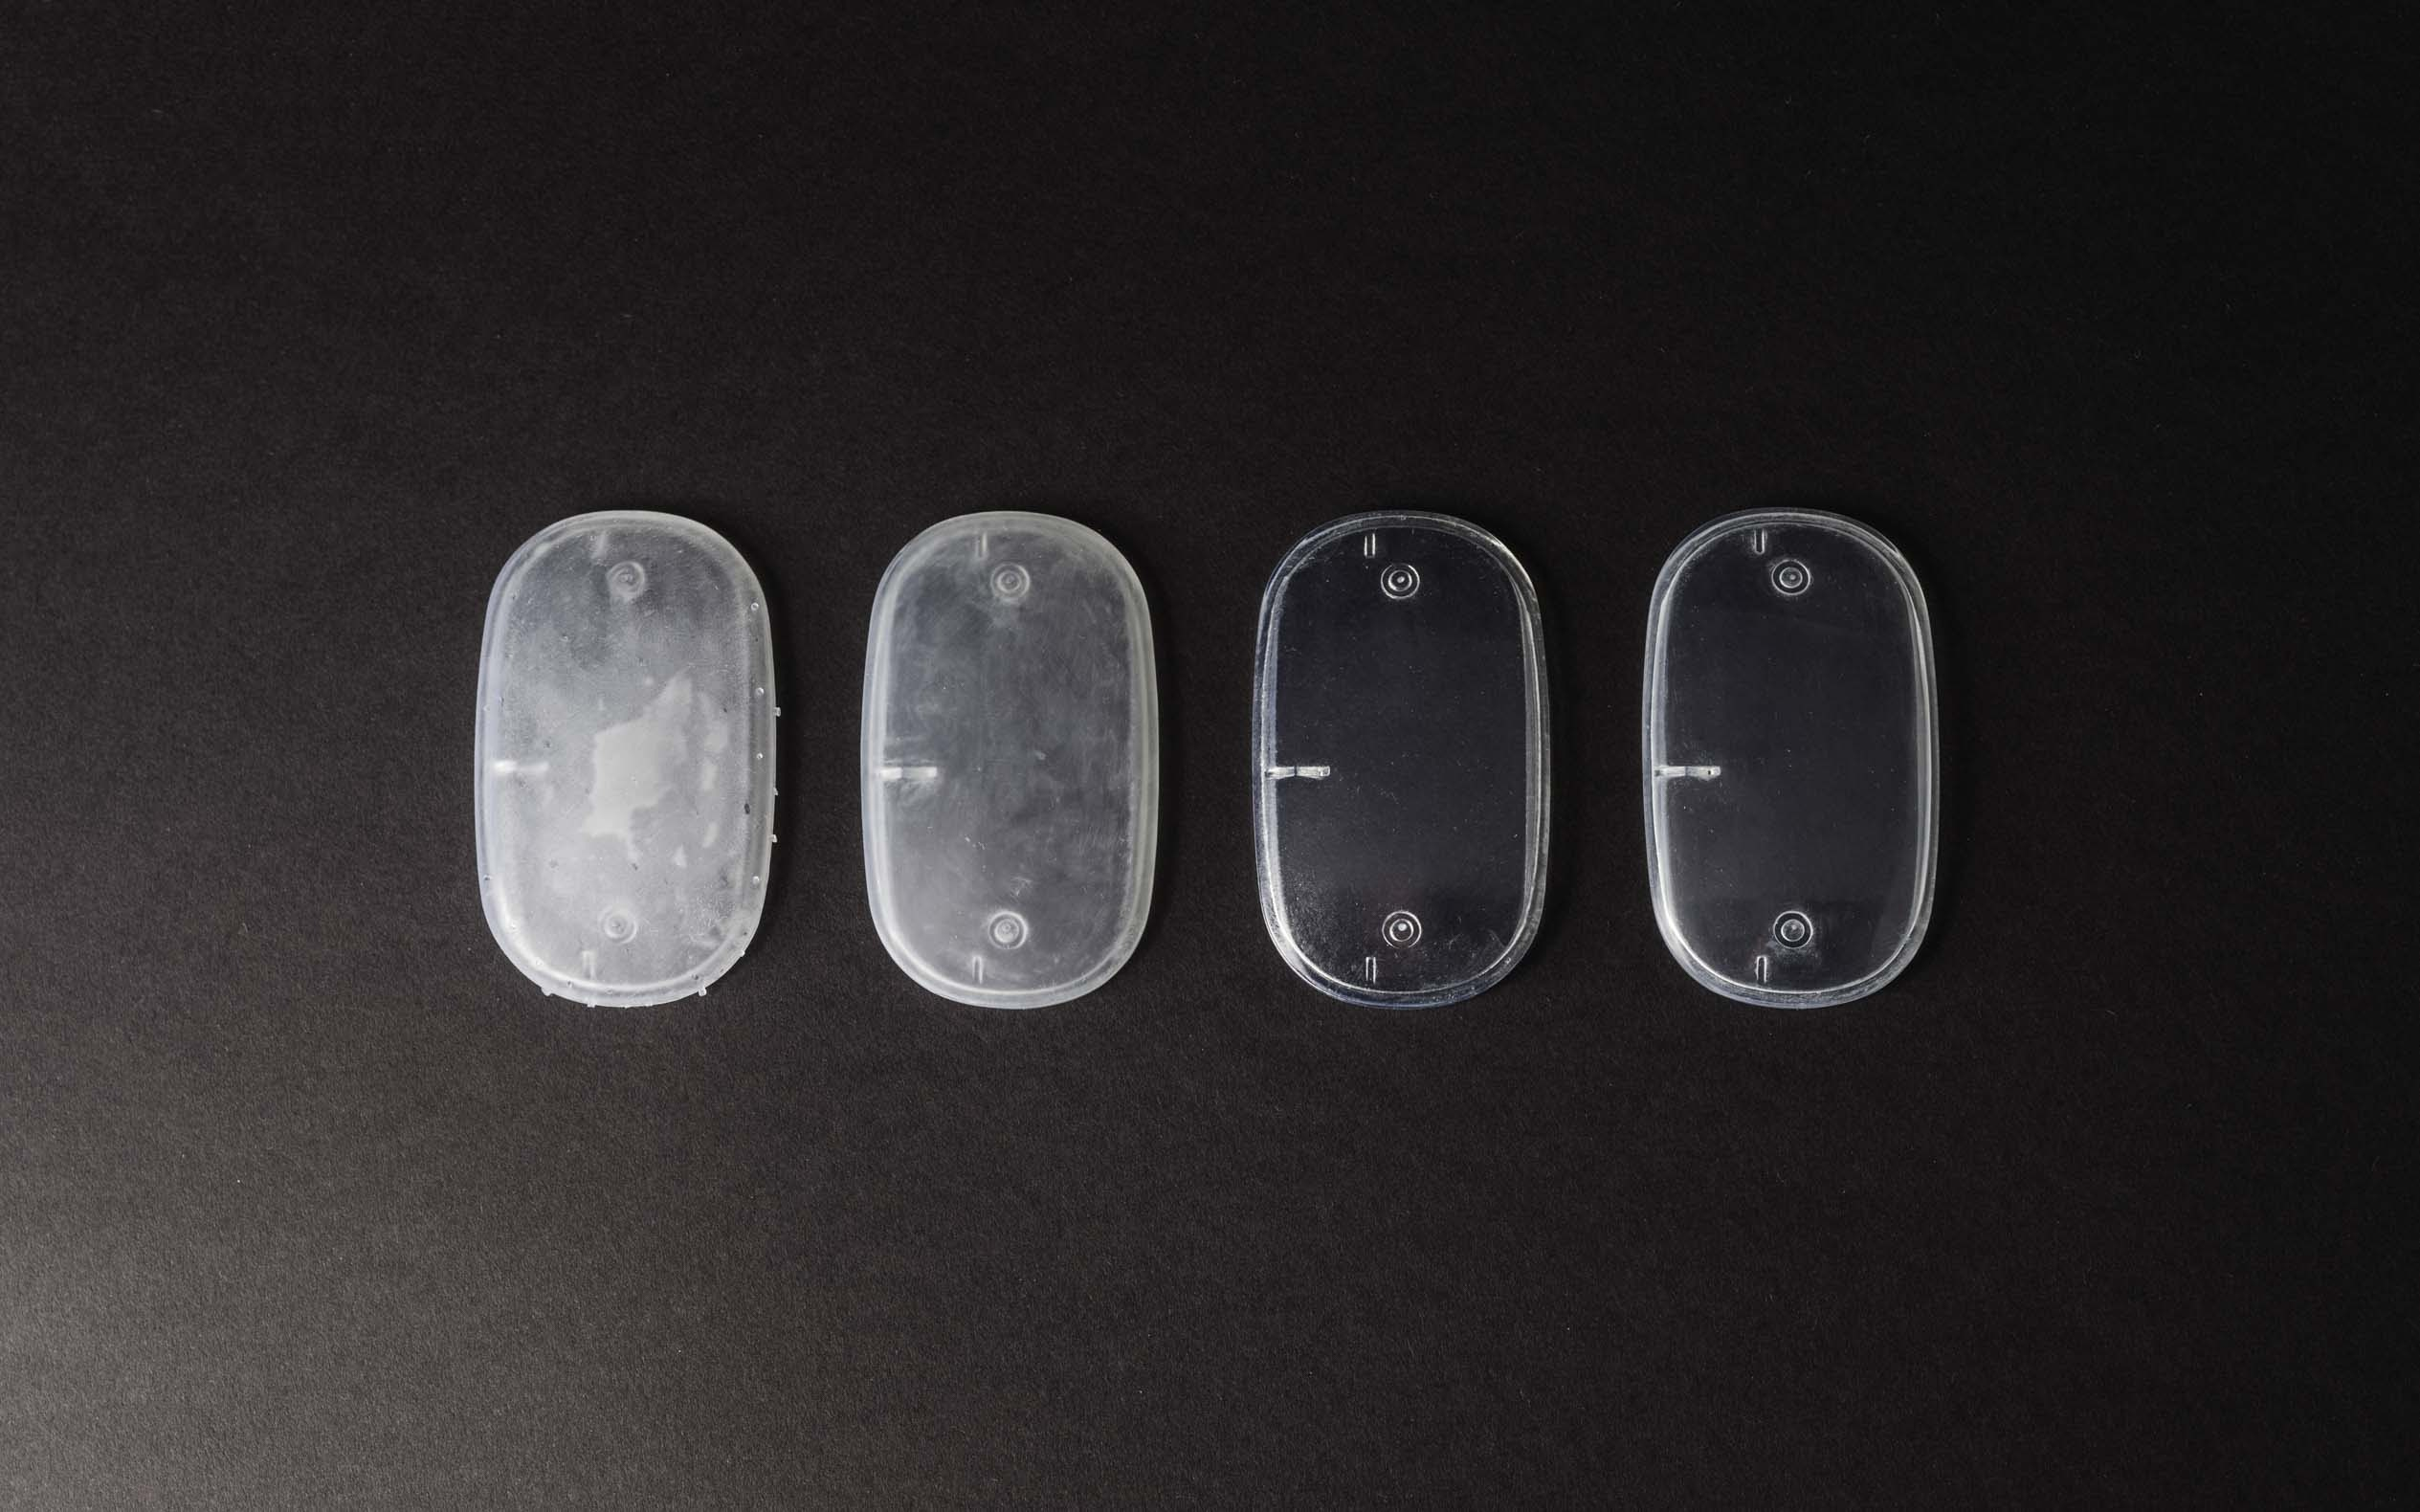 An electronic enclosure 3D printed with SLA in Clear resin during different post-processing steps